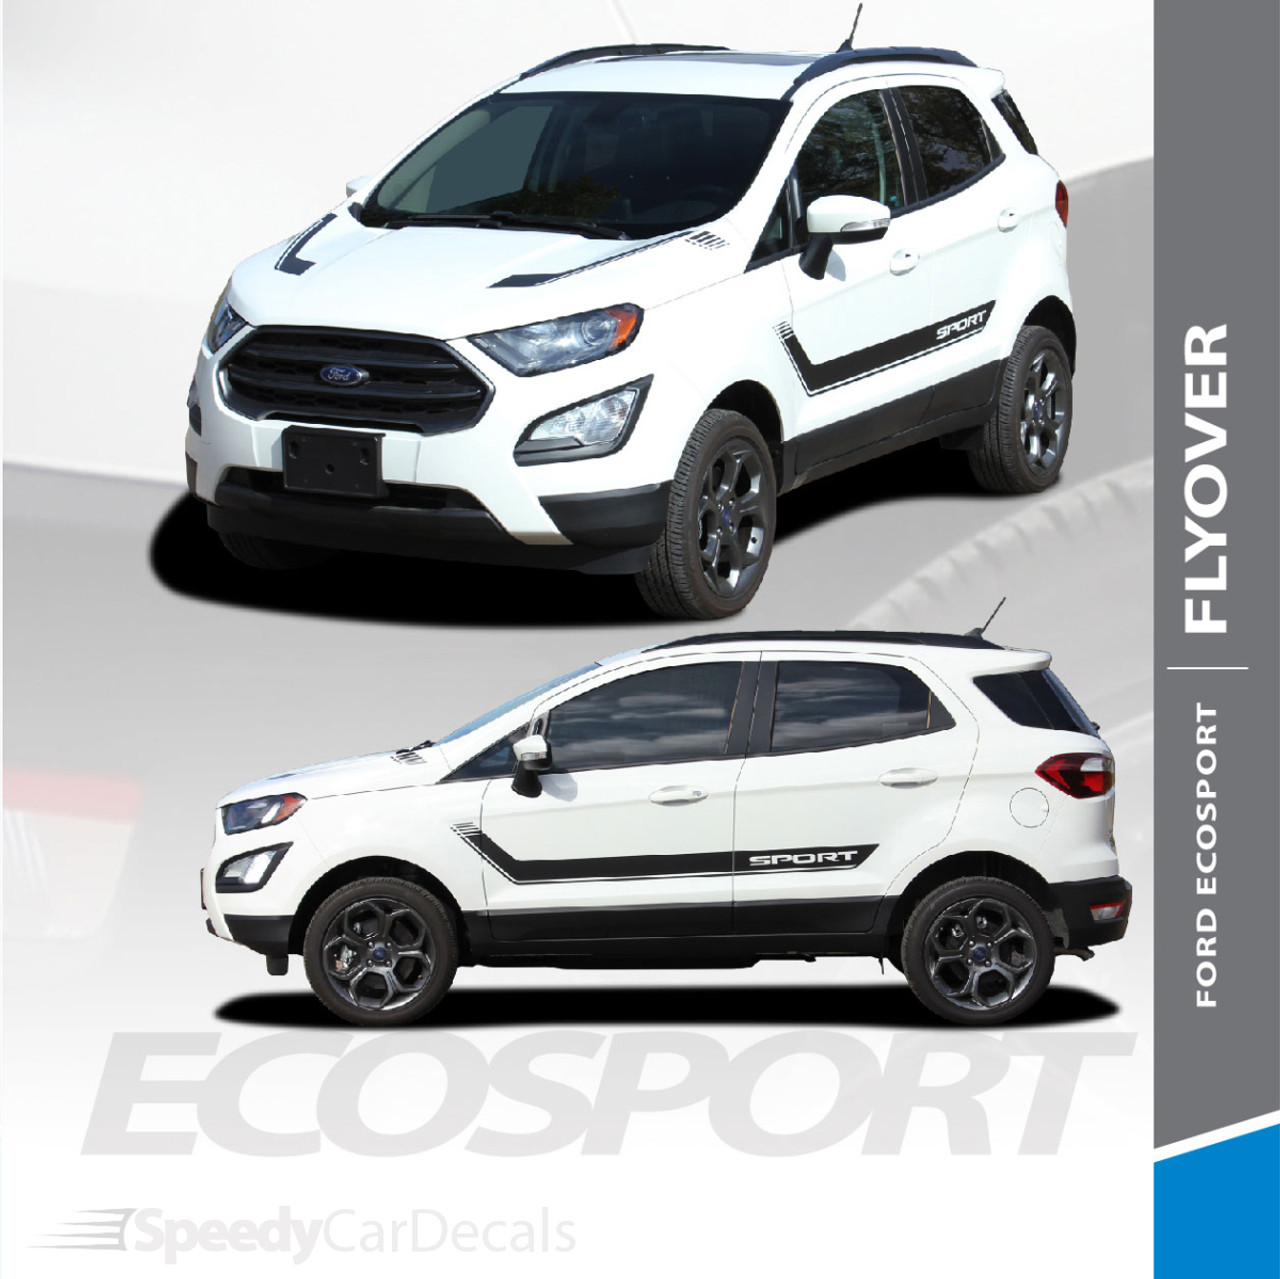 2019 Ford Ecosport: Graphics For Ford EcoSport FLYOVER KIT 2013-2016 2017 2018